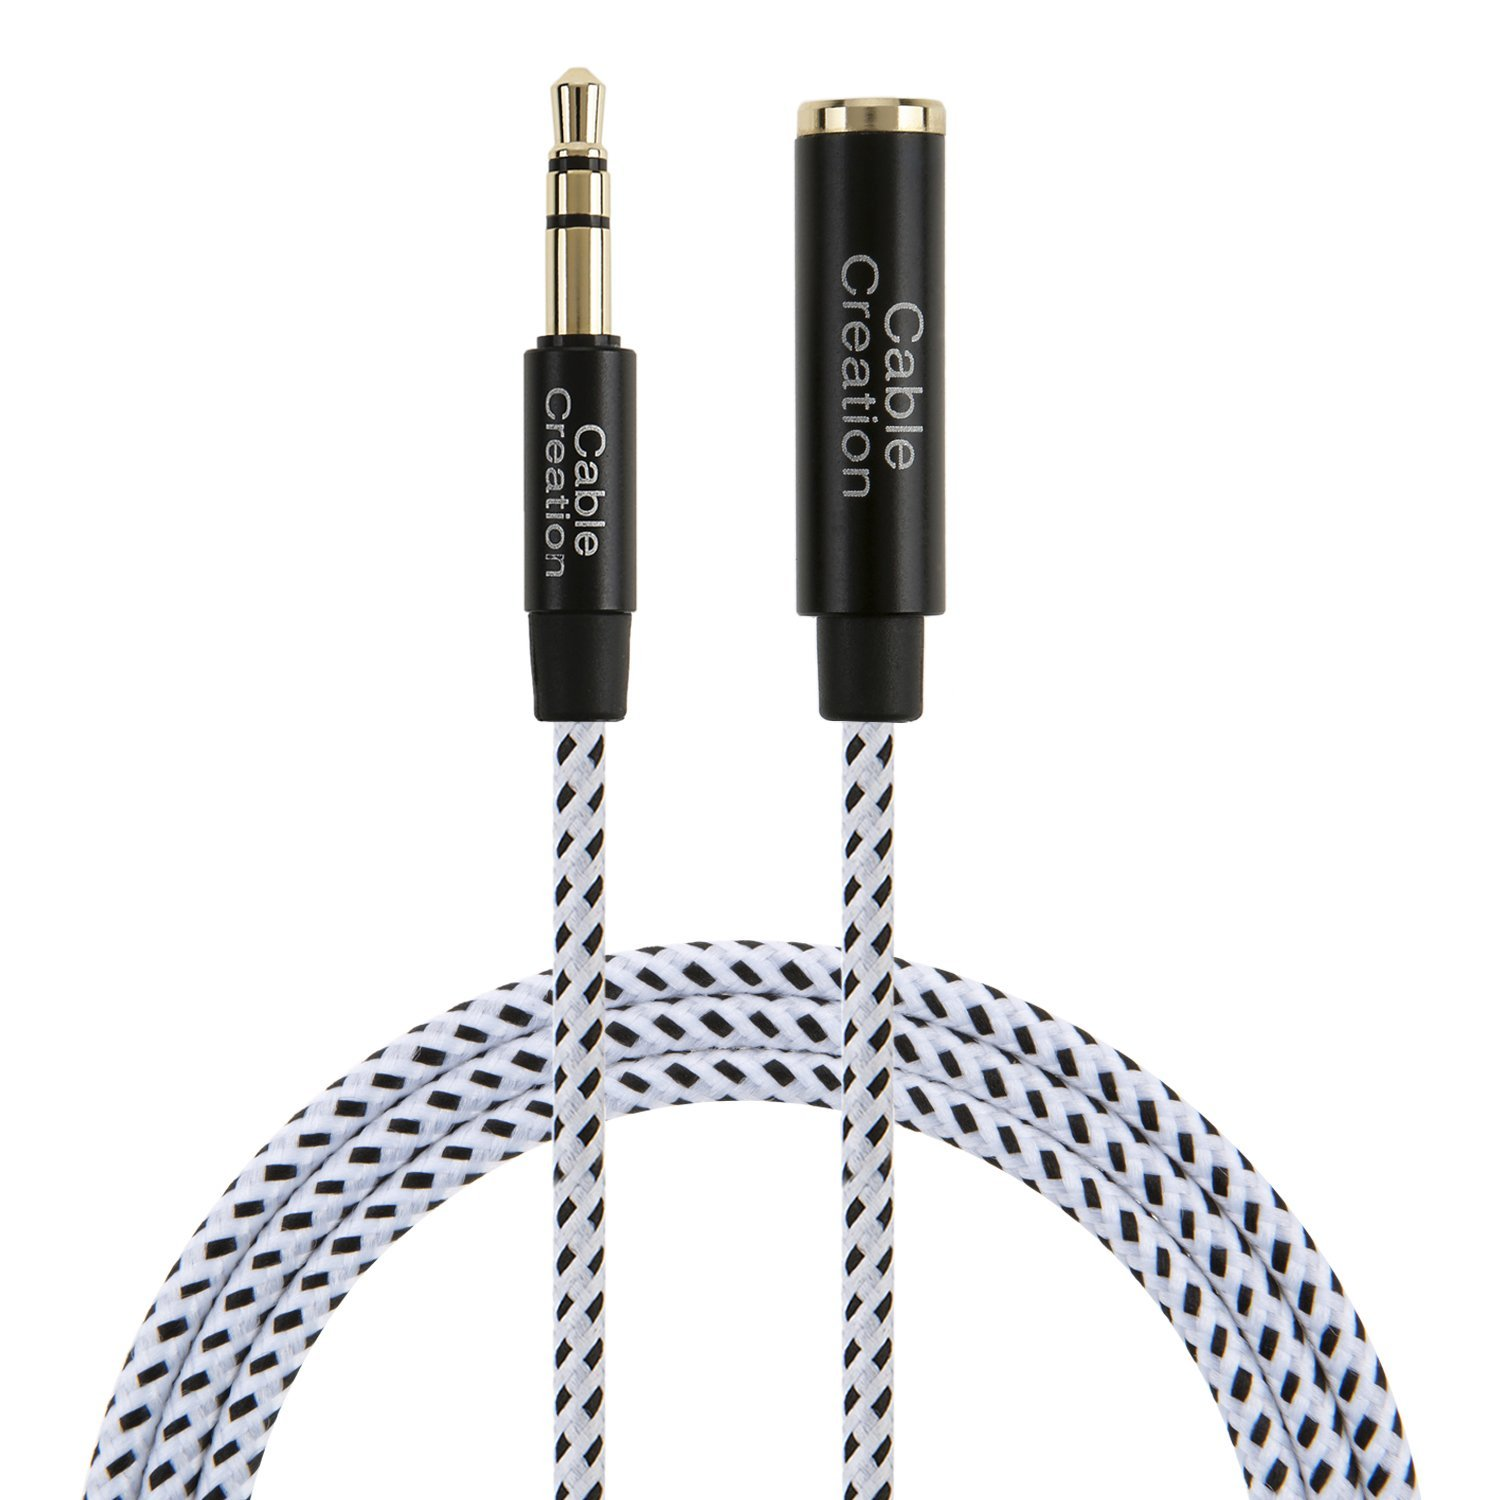 3.5mm Headphone Extension Cable, #CC0444